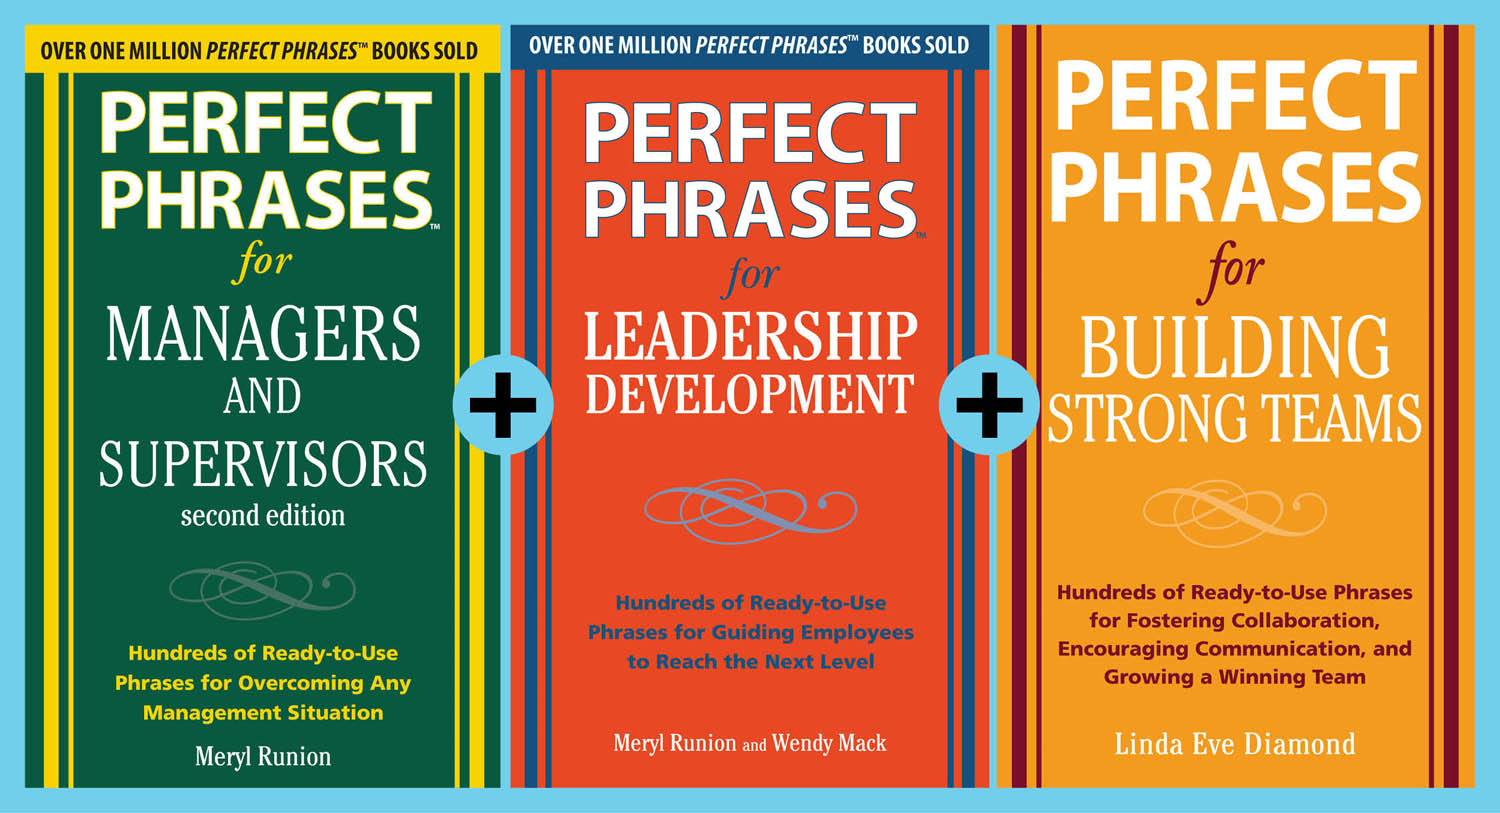 Perfect Phrases for Managing People (EBOOK)